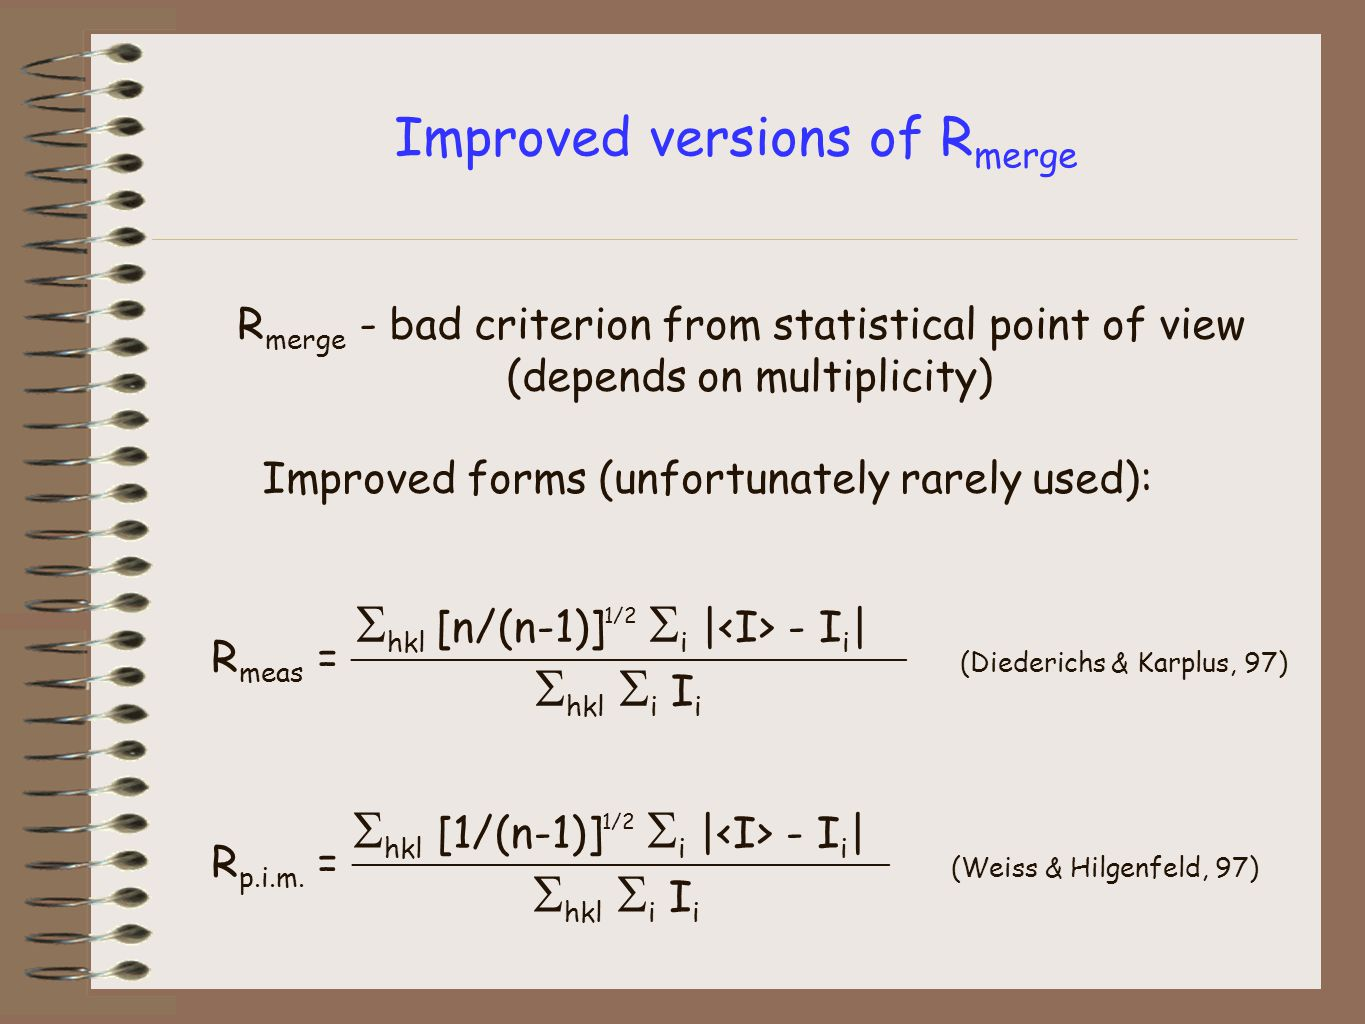 Improved versions of R merge R merge - bad criterion from statistical point of view (depends on multiplicity) Improved forms (unfortunately rarely used): R meas = _______________________________ (Diederichs & Karplus, 97) R p.i.m.